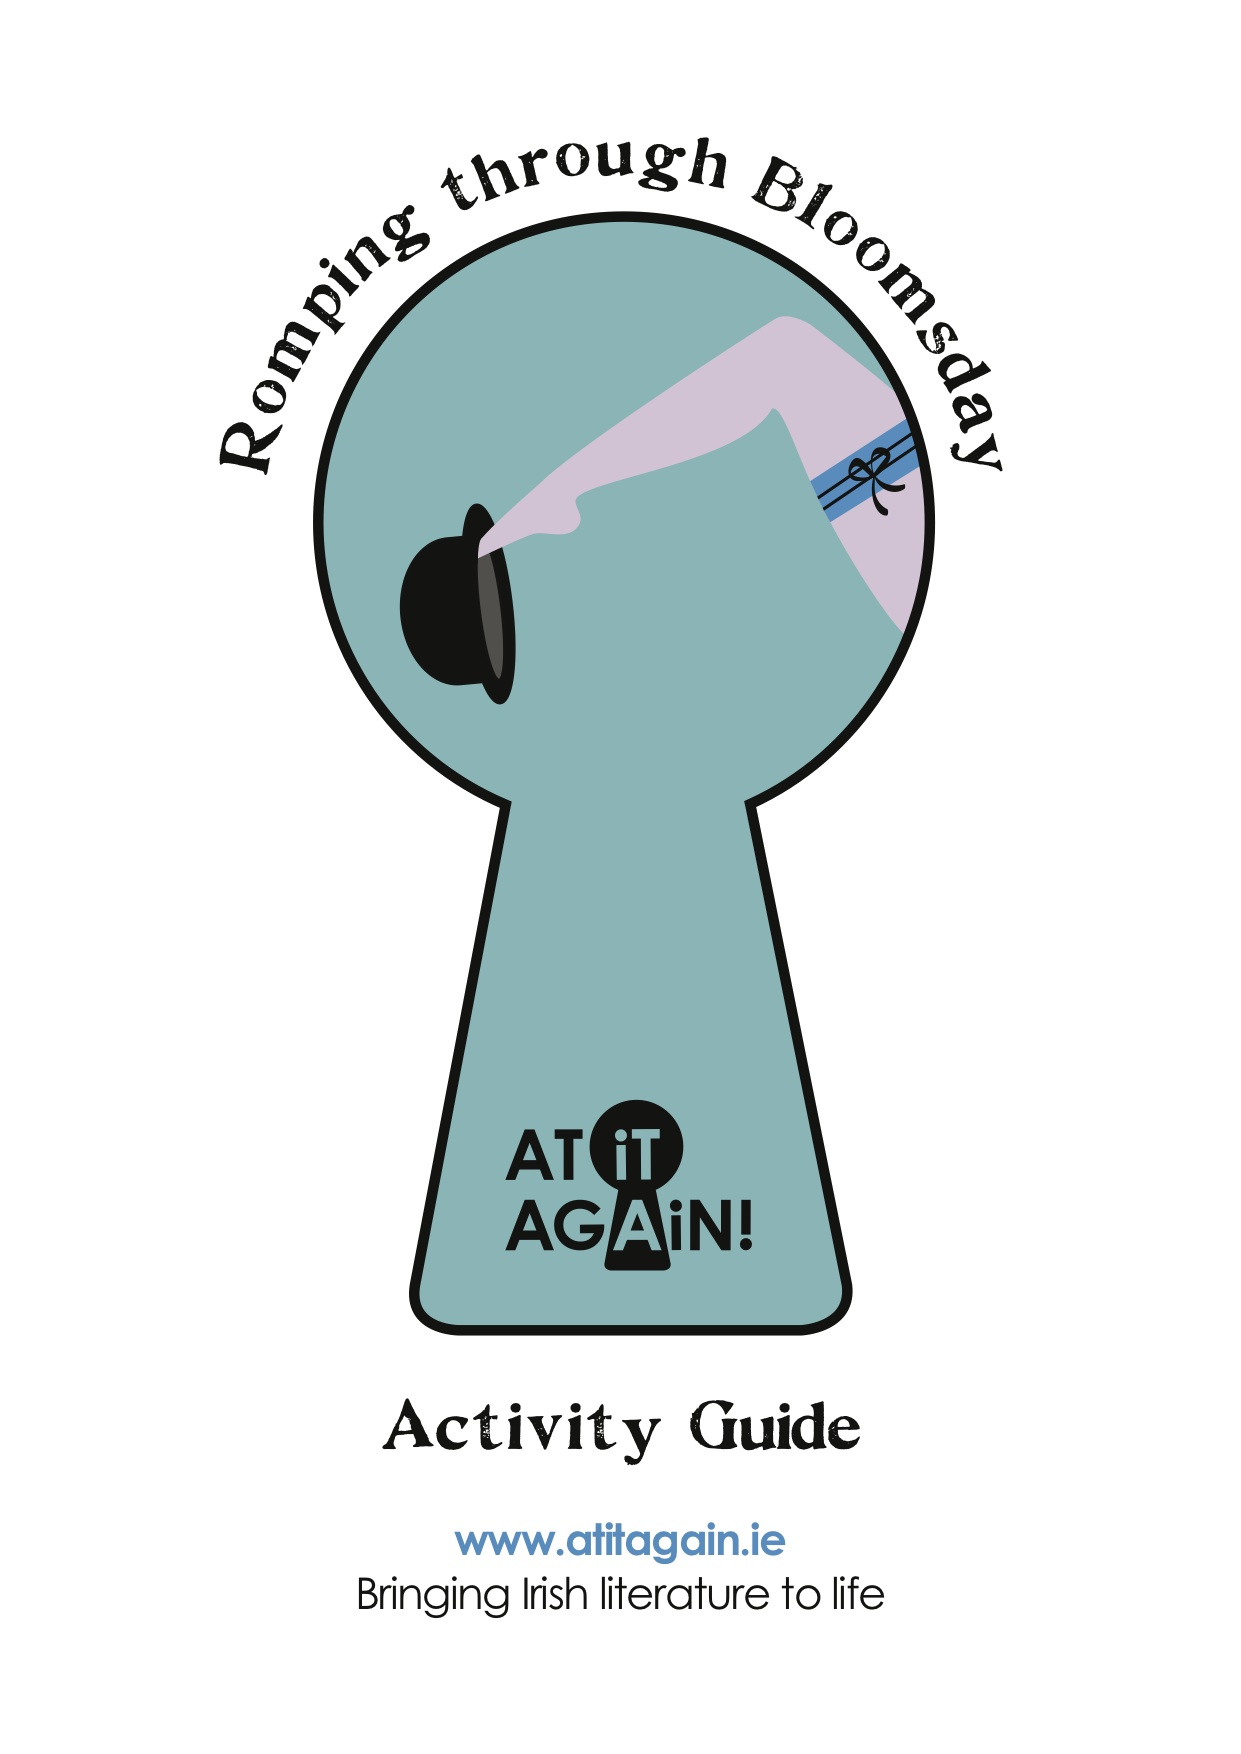 Romping through Bloomsday Activity Guide by At it Again!